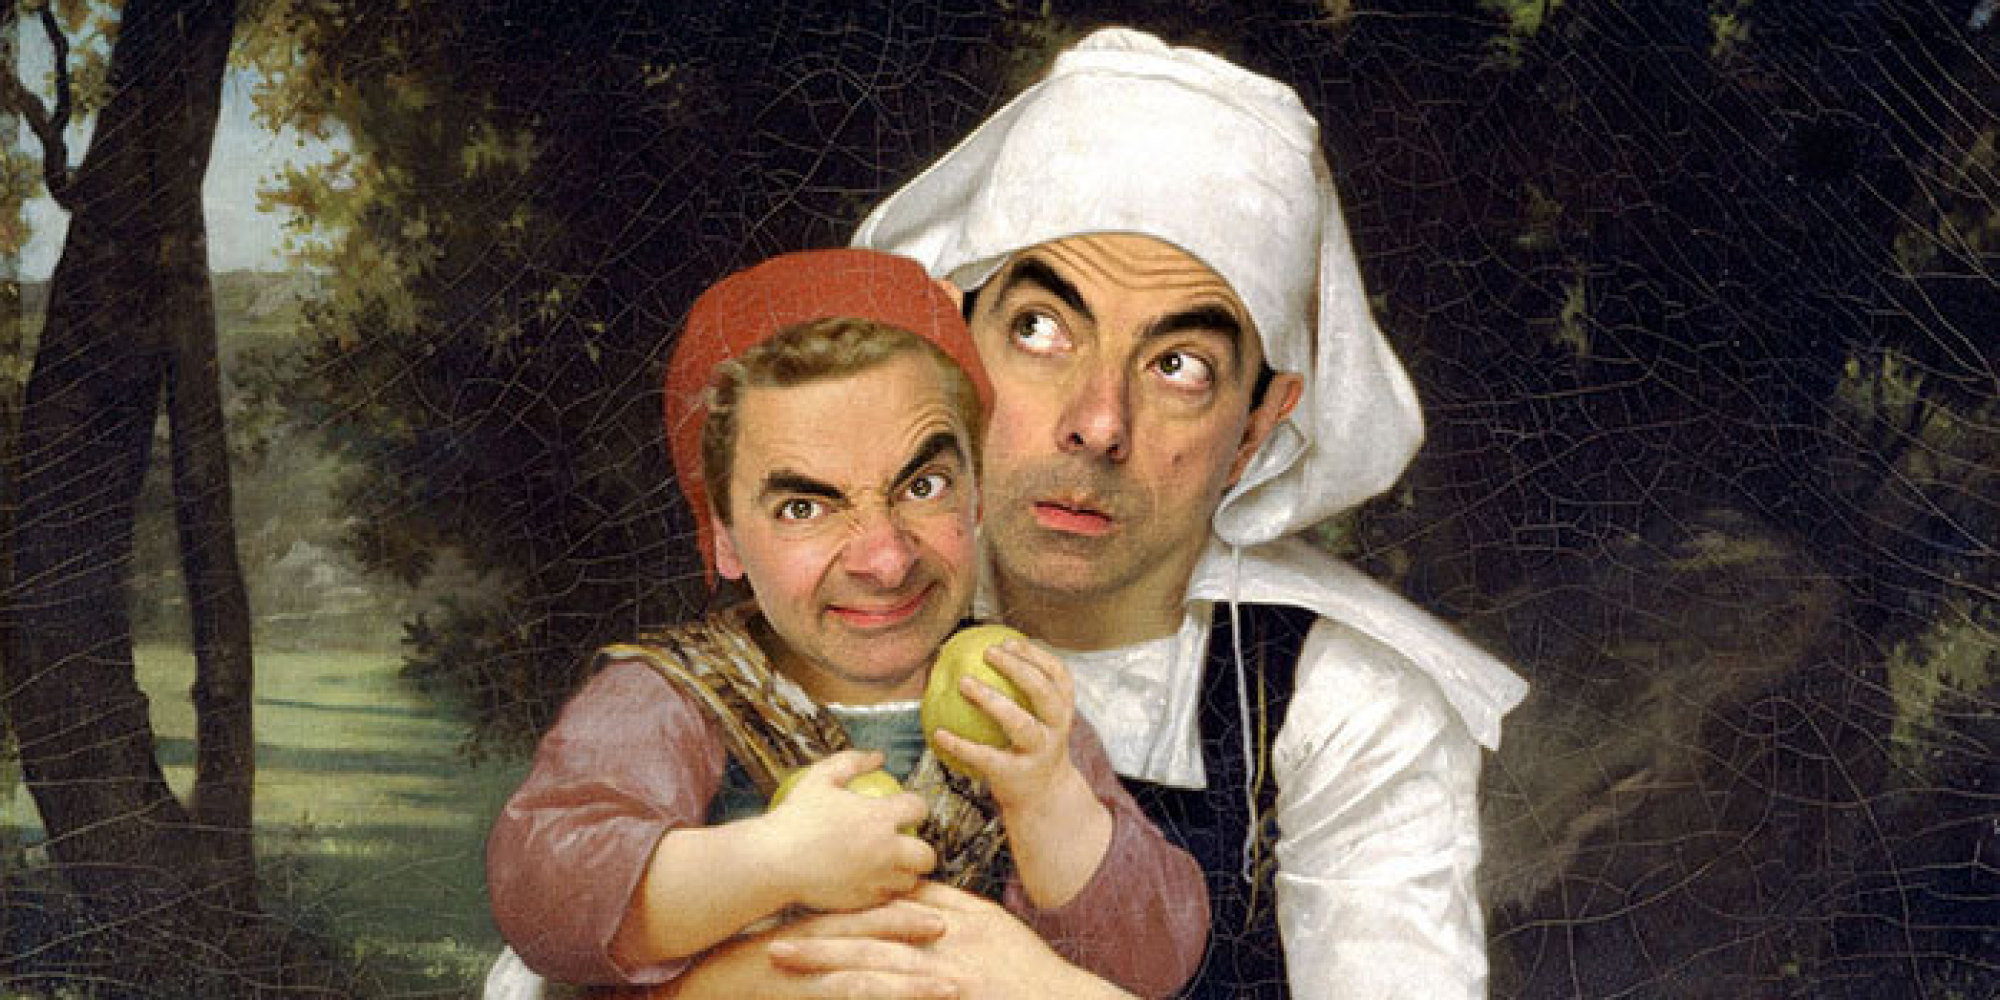 Mr. Bean Infiltrates Art History In Hilarious Photo Series